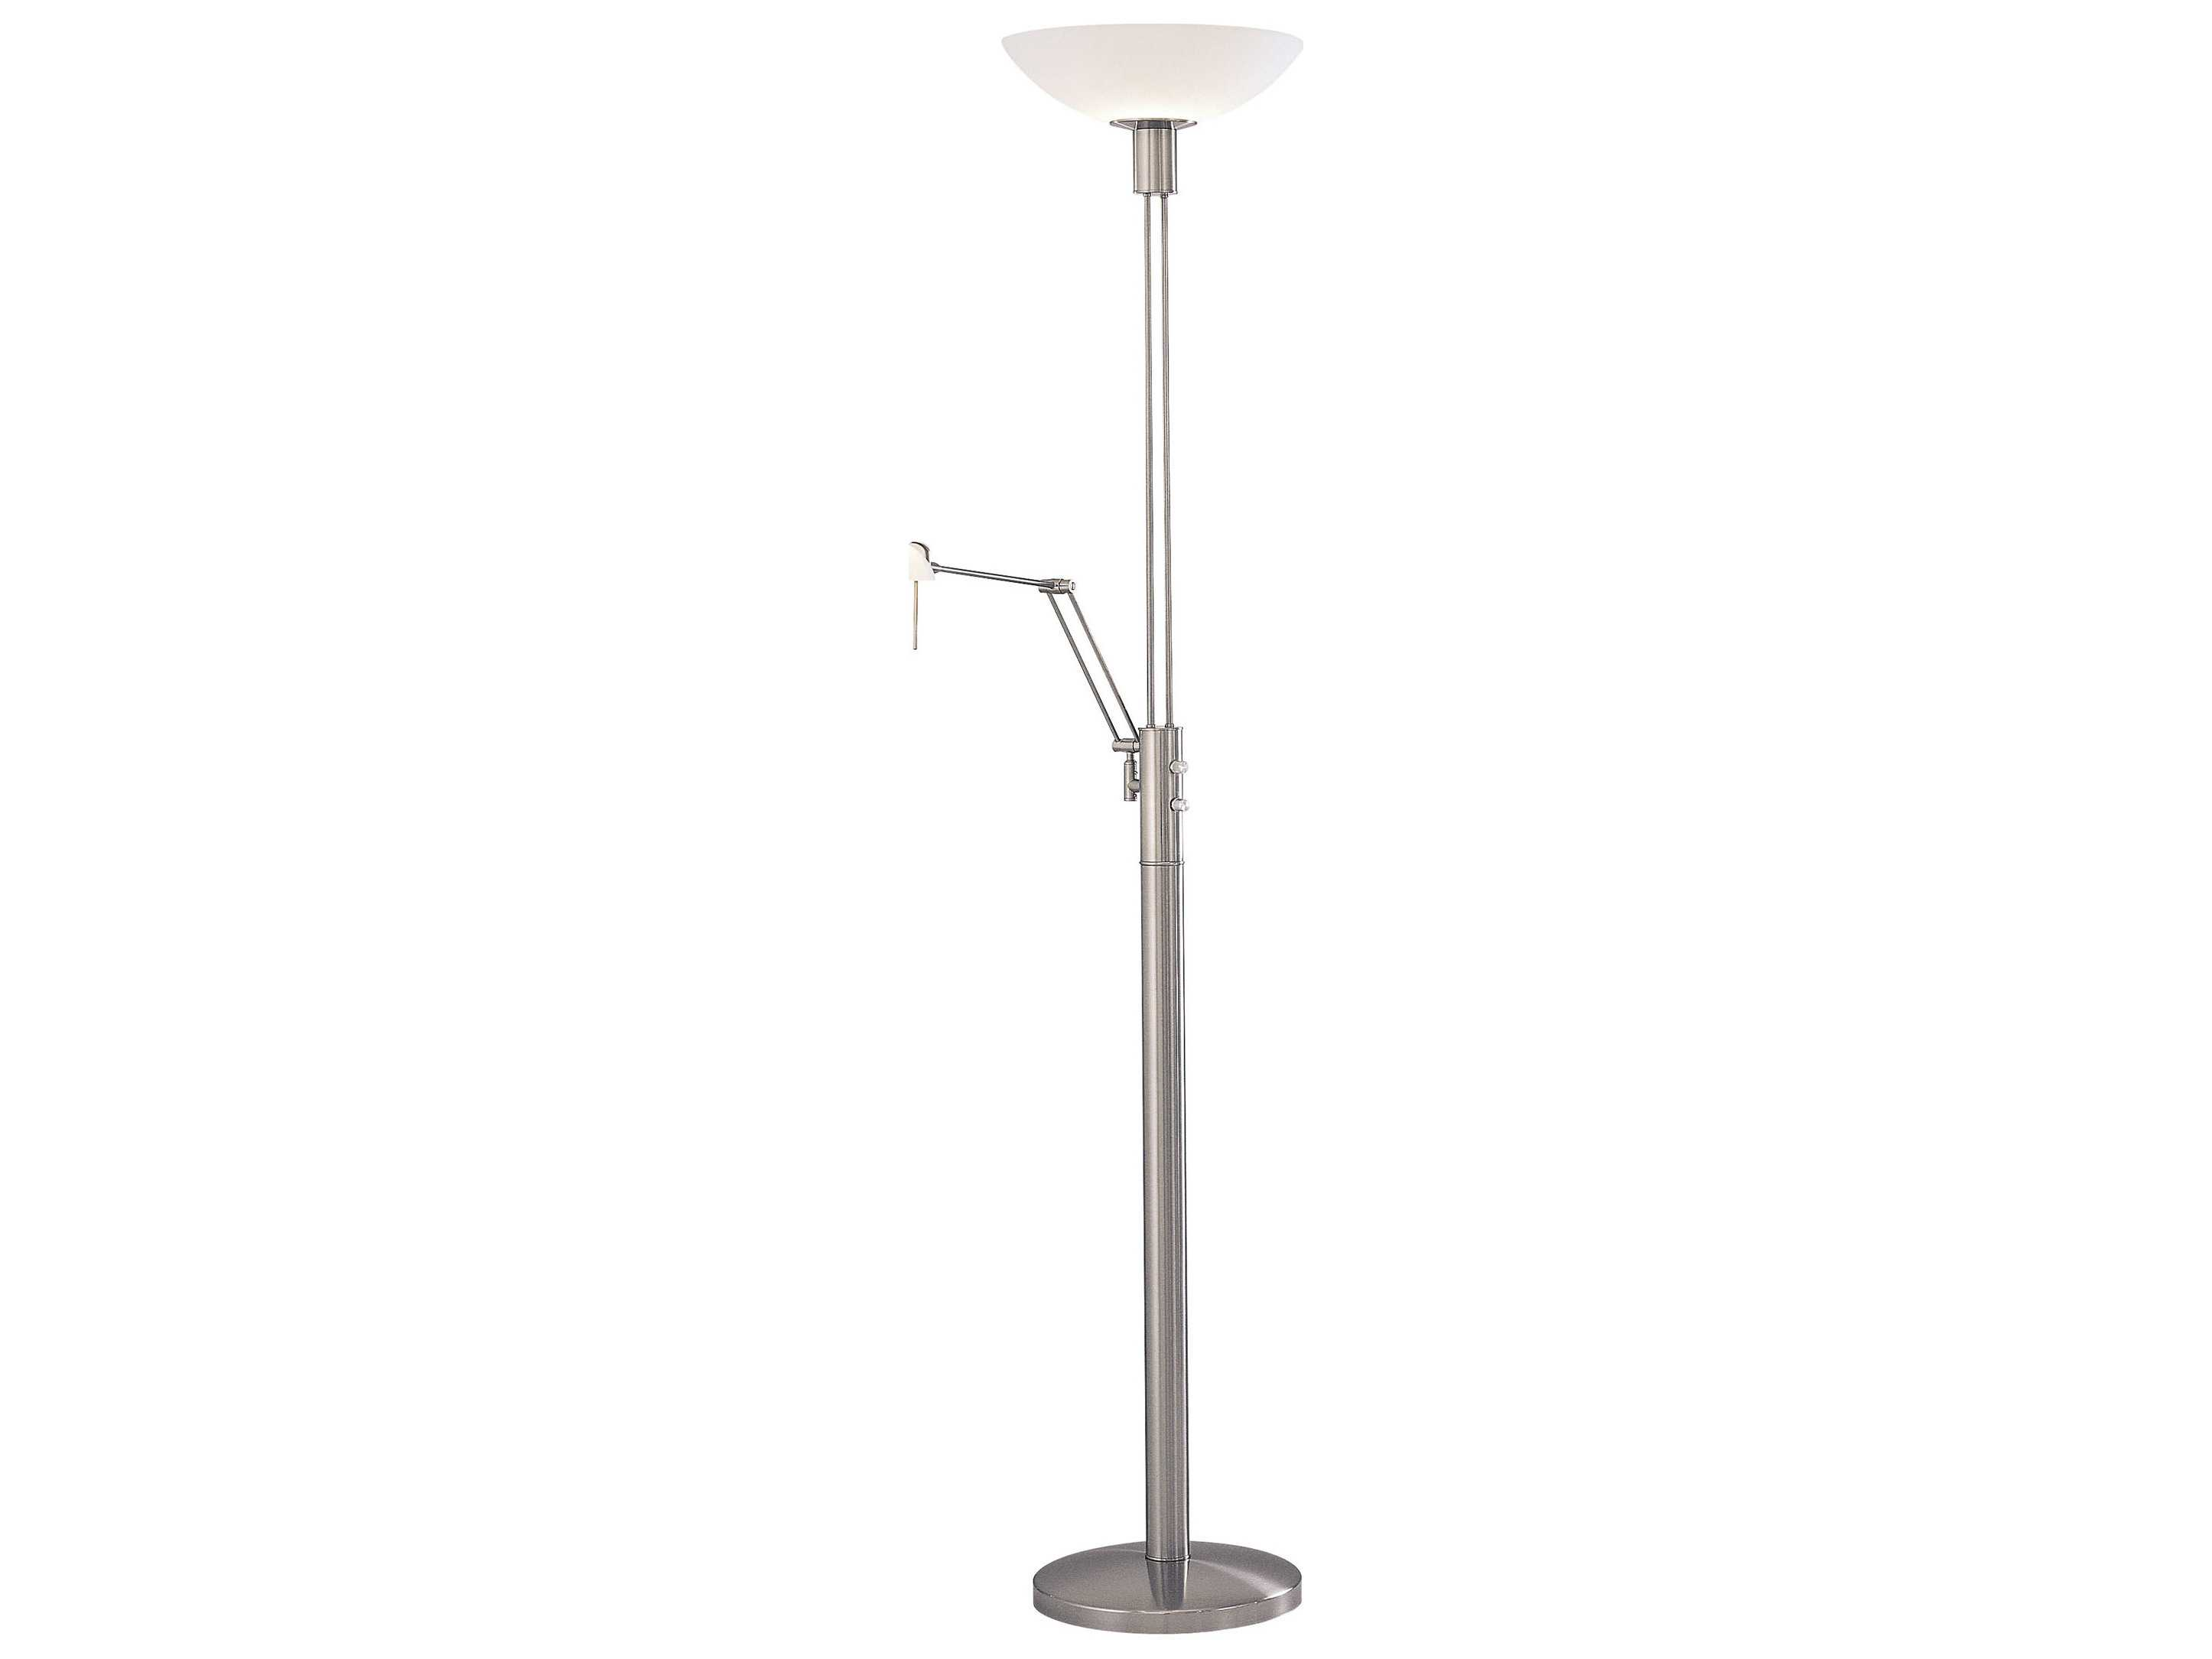 reading room brushed nickel torchiere floor lamp with reading light. Black Bedroom Furniture Sets. Home Design Ideas